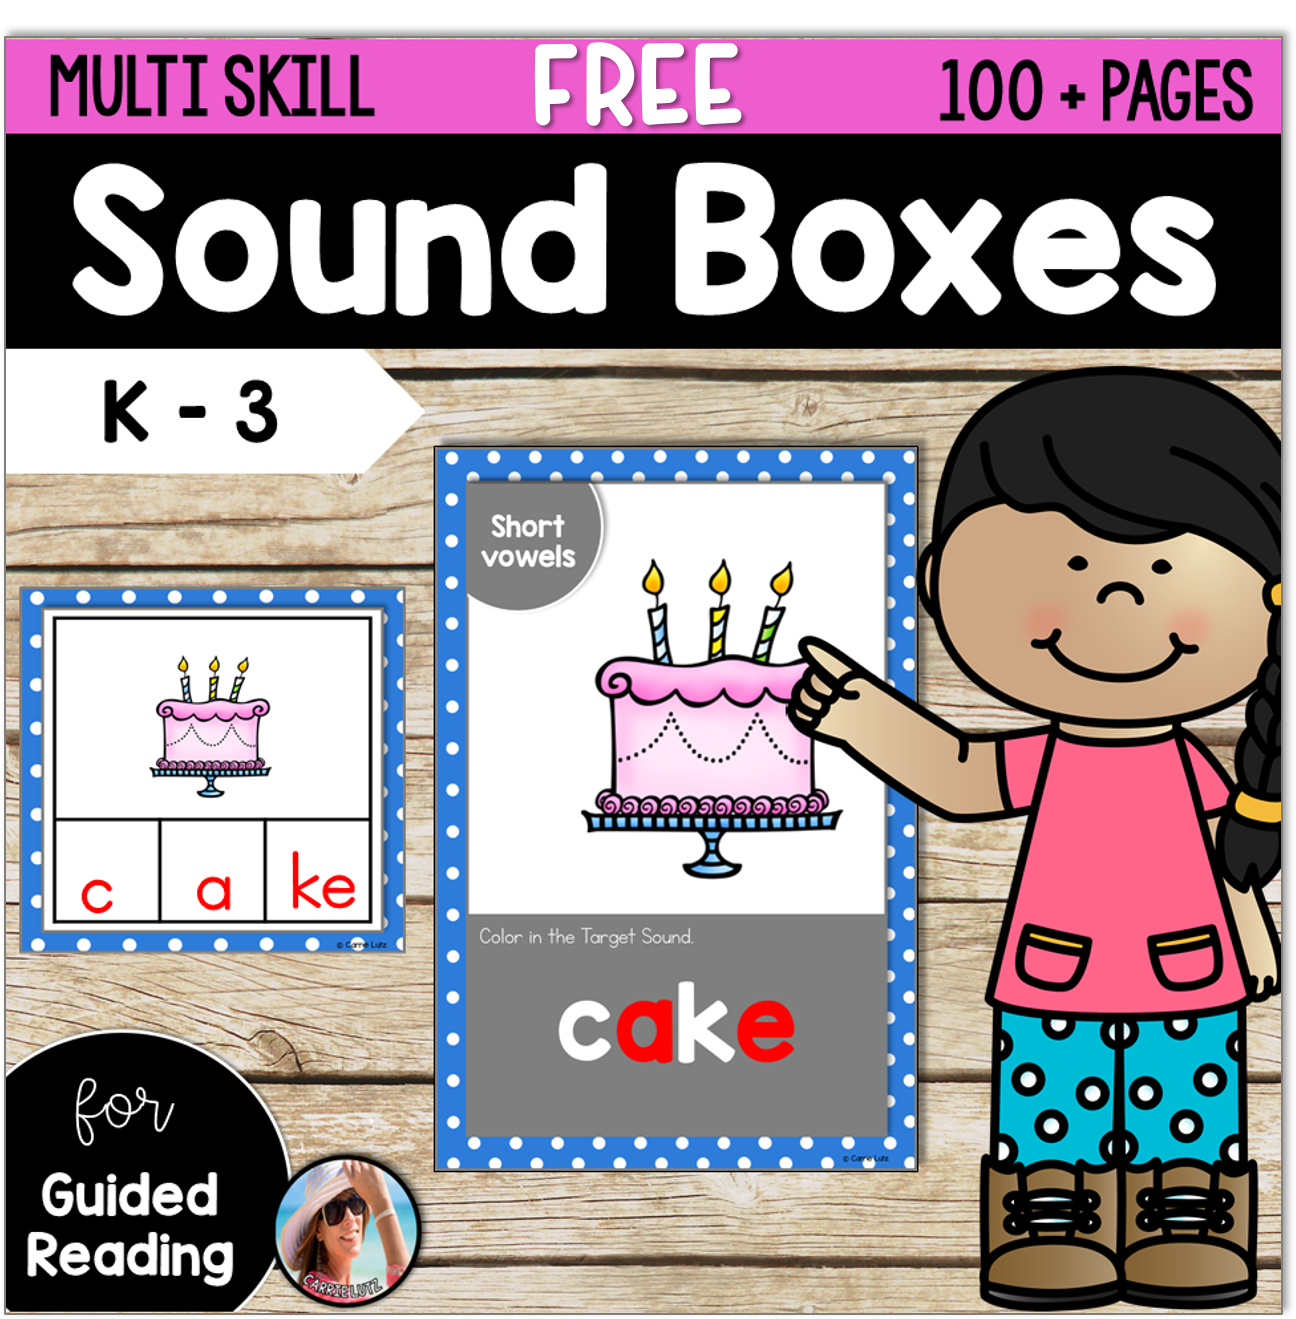 Have You Ever Used Sound Boxes With Pictures For Your Word